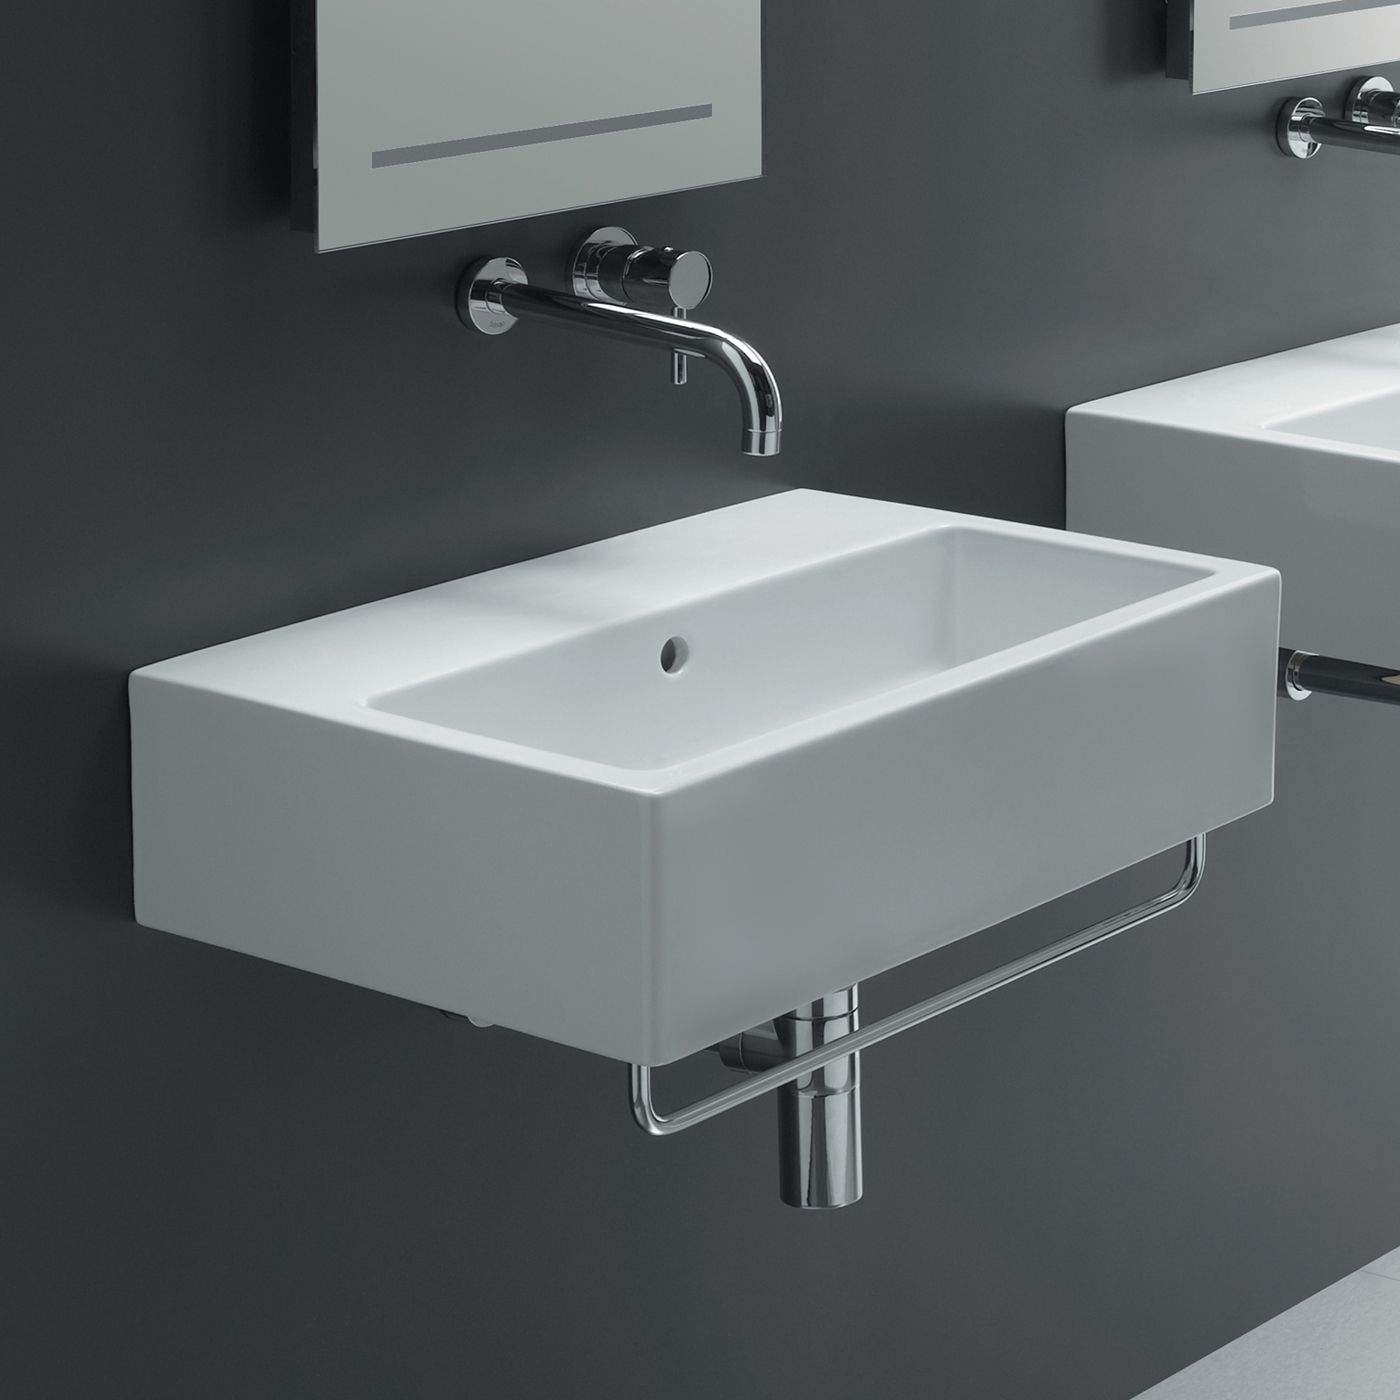 Solid Surface Wall Mounted Bathroom Sink Model Wt 04 D Badeloft Usa Wall Mounted Sink Wall Mounted Bathroom Sink Wall Mounted Bathroom Sinks